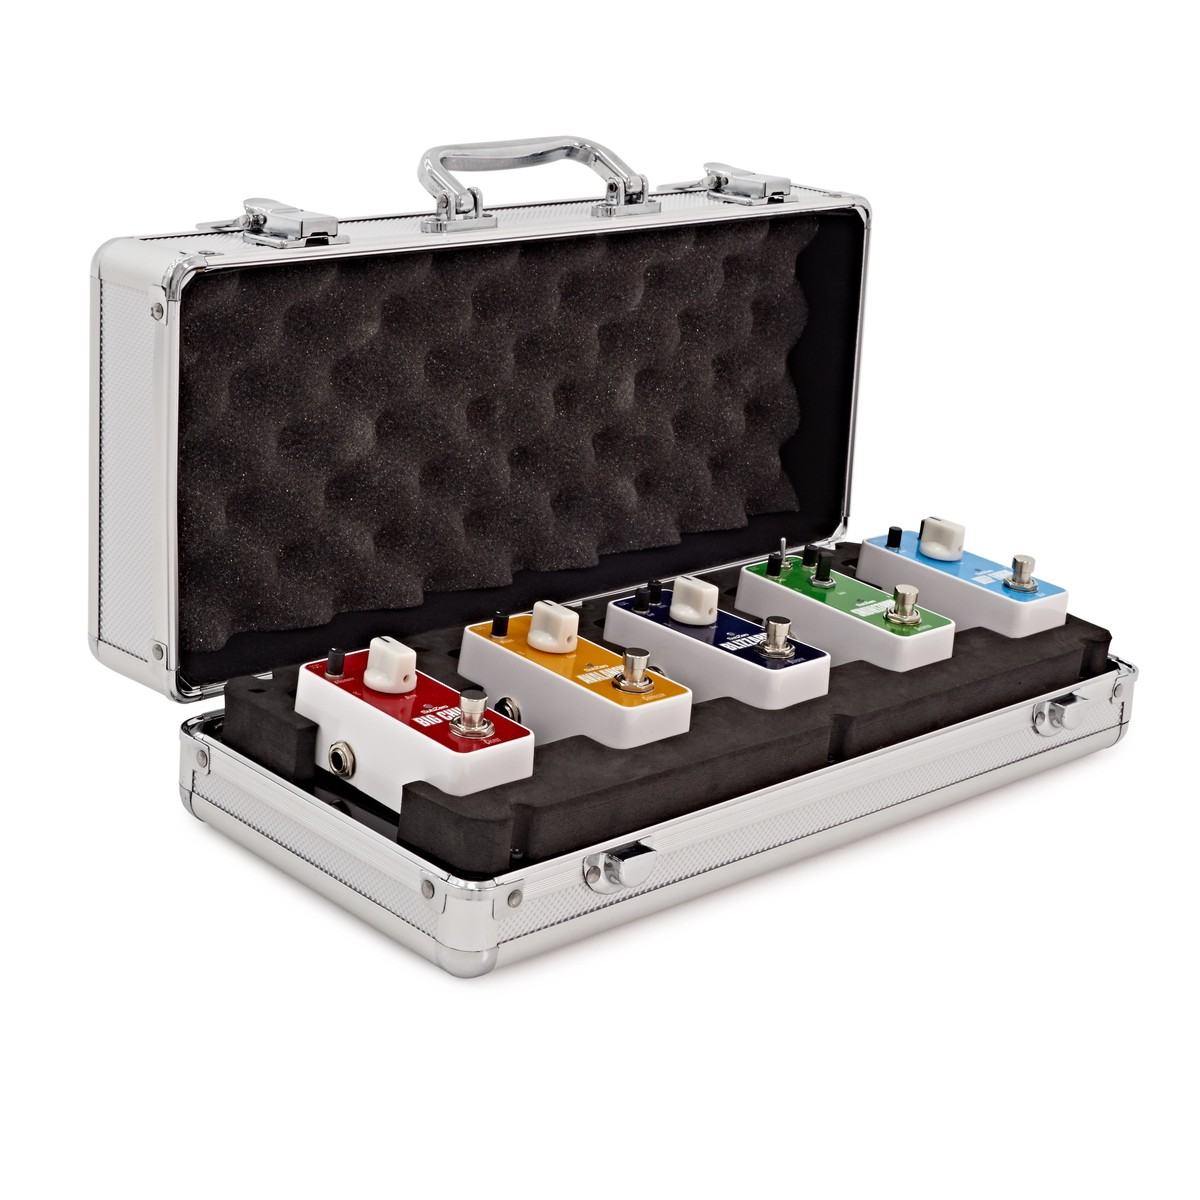 subzero micro guitar pedal and pedal board effects pack at gear4music. Black Bedroom Furniture Sets. Home Design Ideas